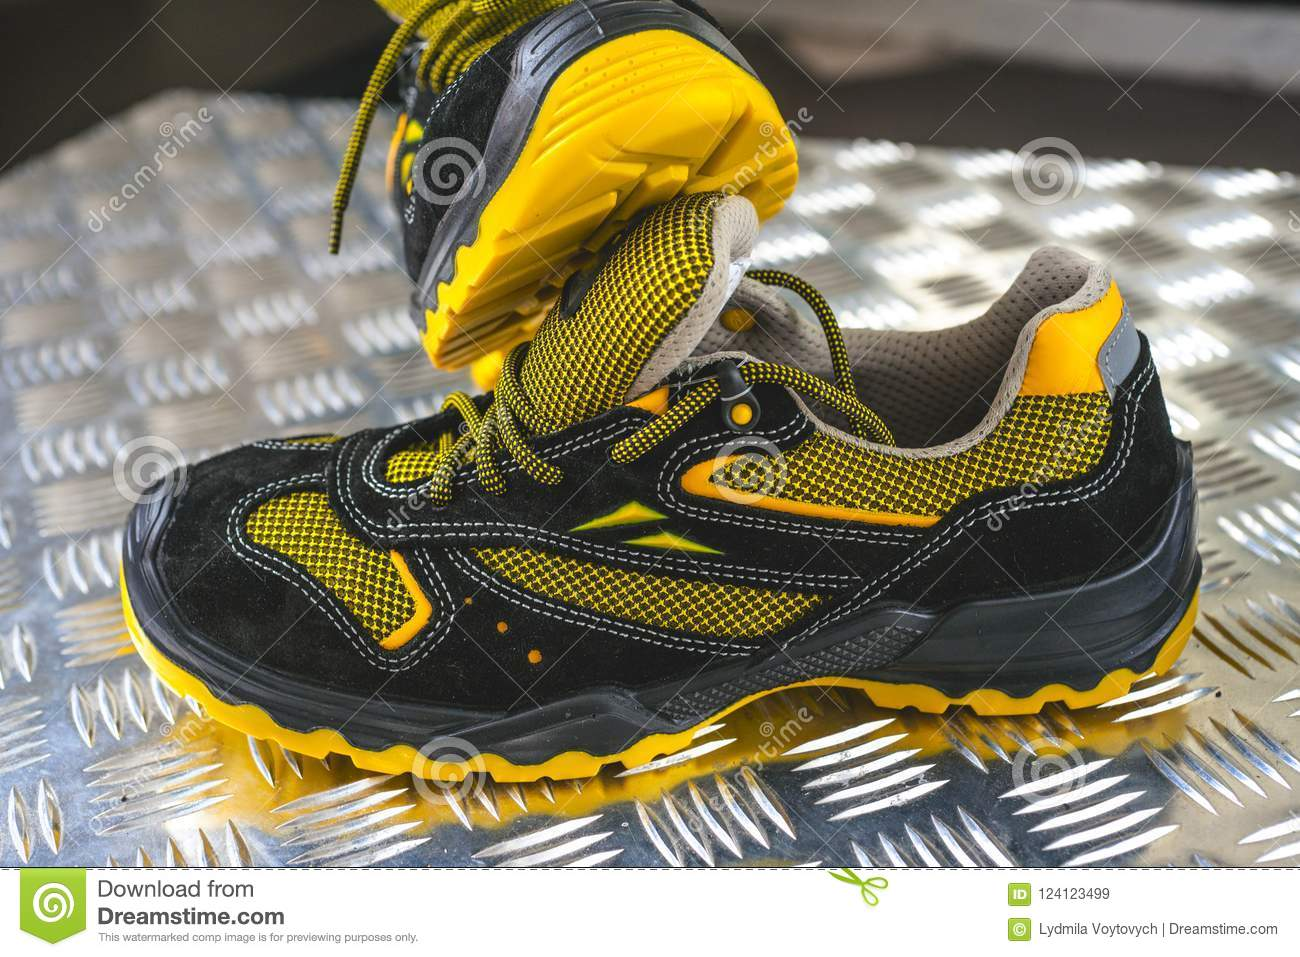 a179447d6b3a Unbranded Modern Sneaker In The Gym. Black-Yellow. Comfortable Shoes ...